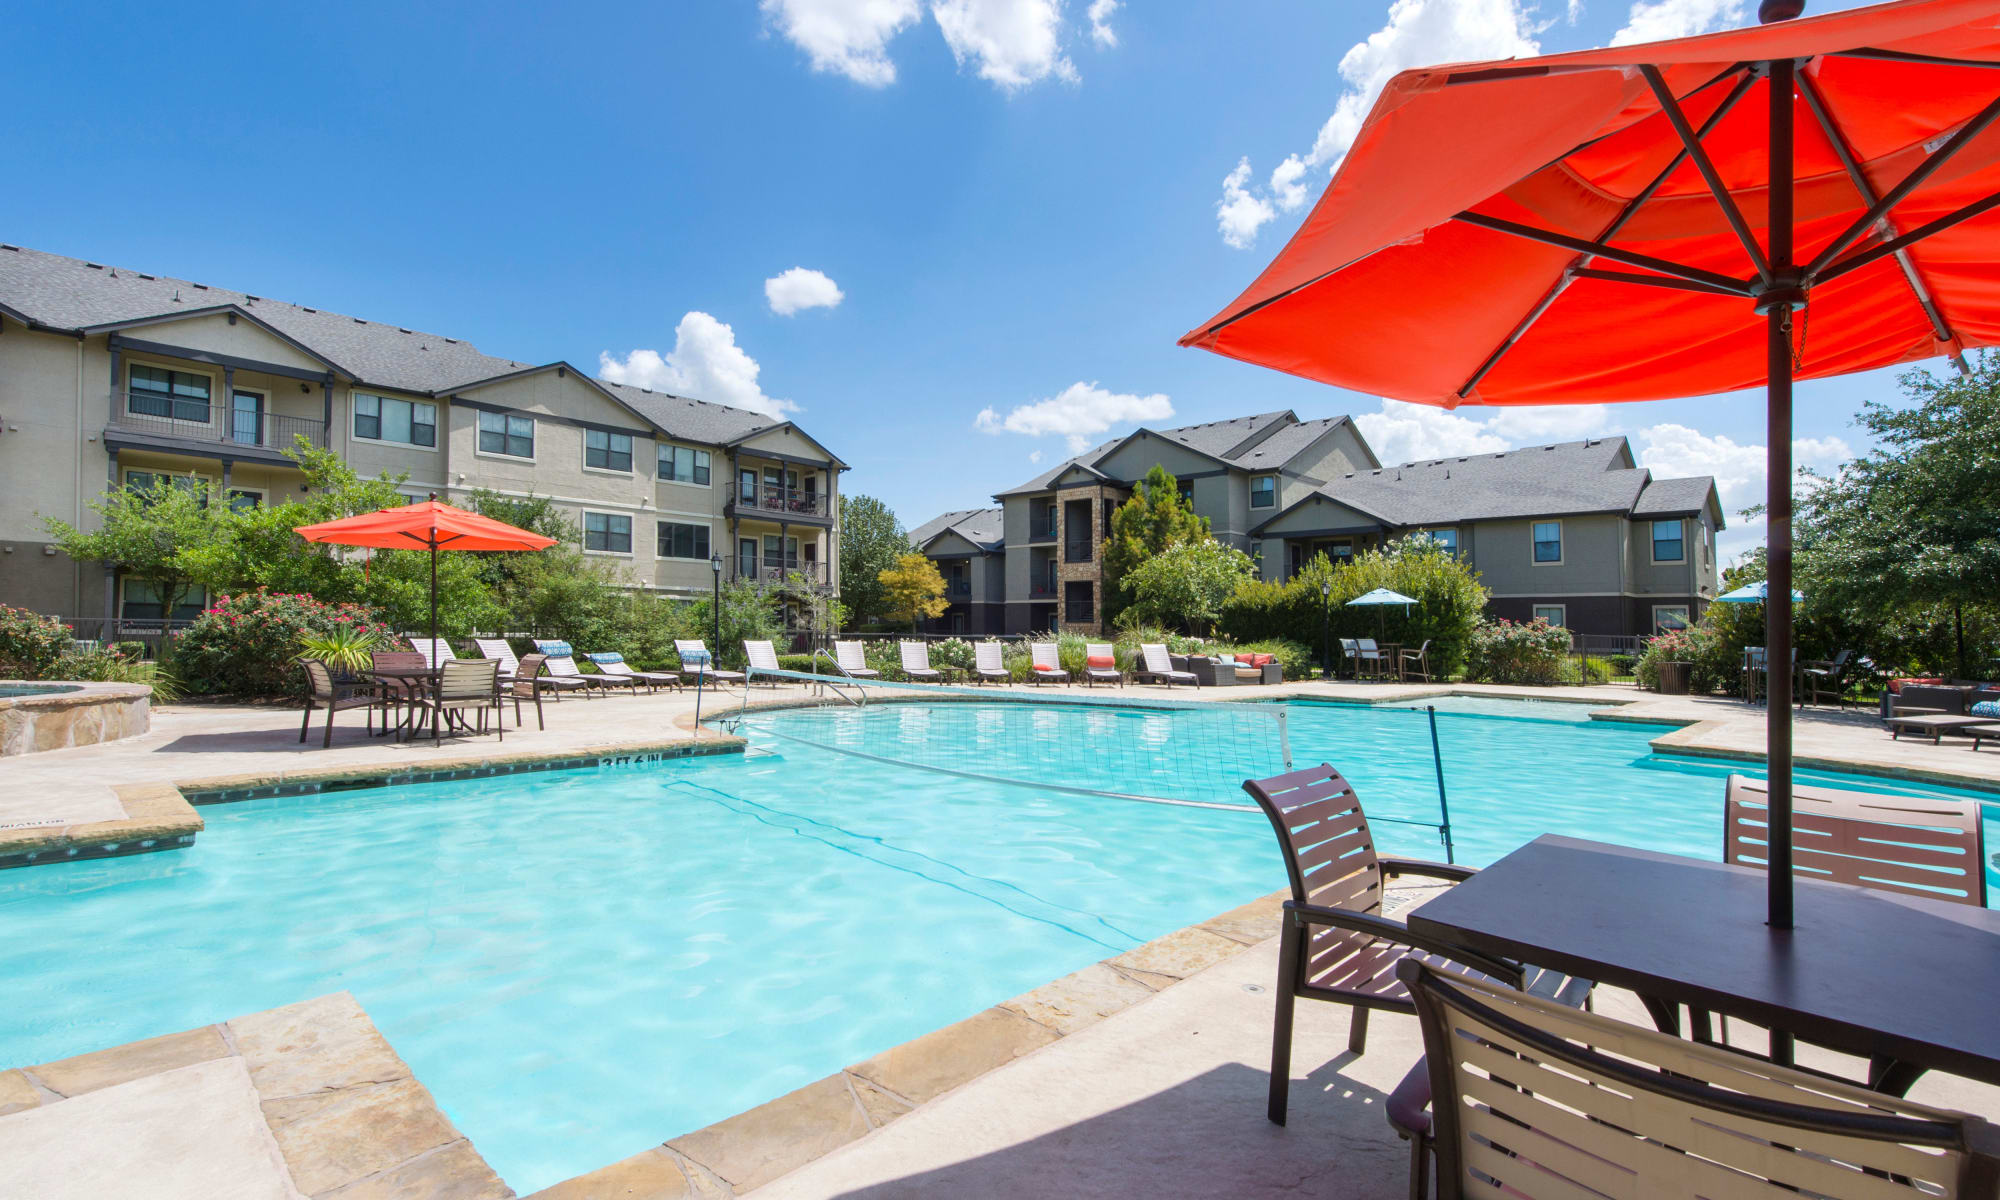 Apartments in Bryan, TX